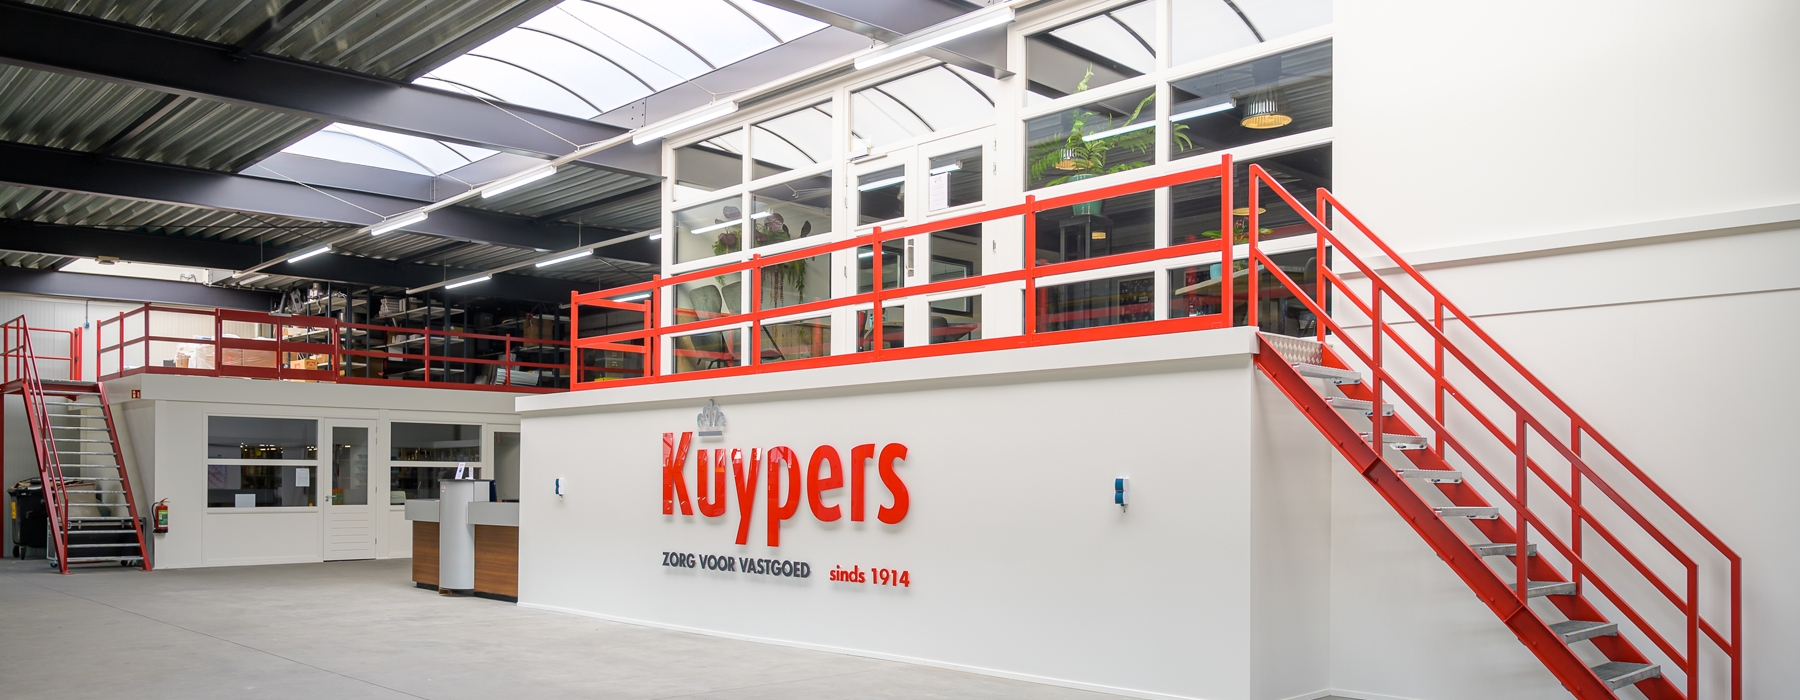 Kuypers_magazijn